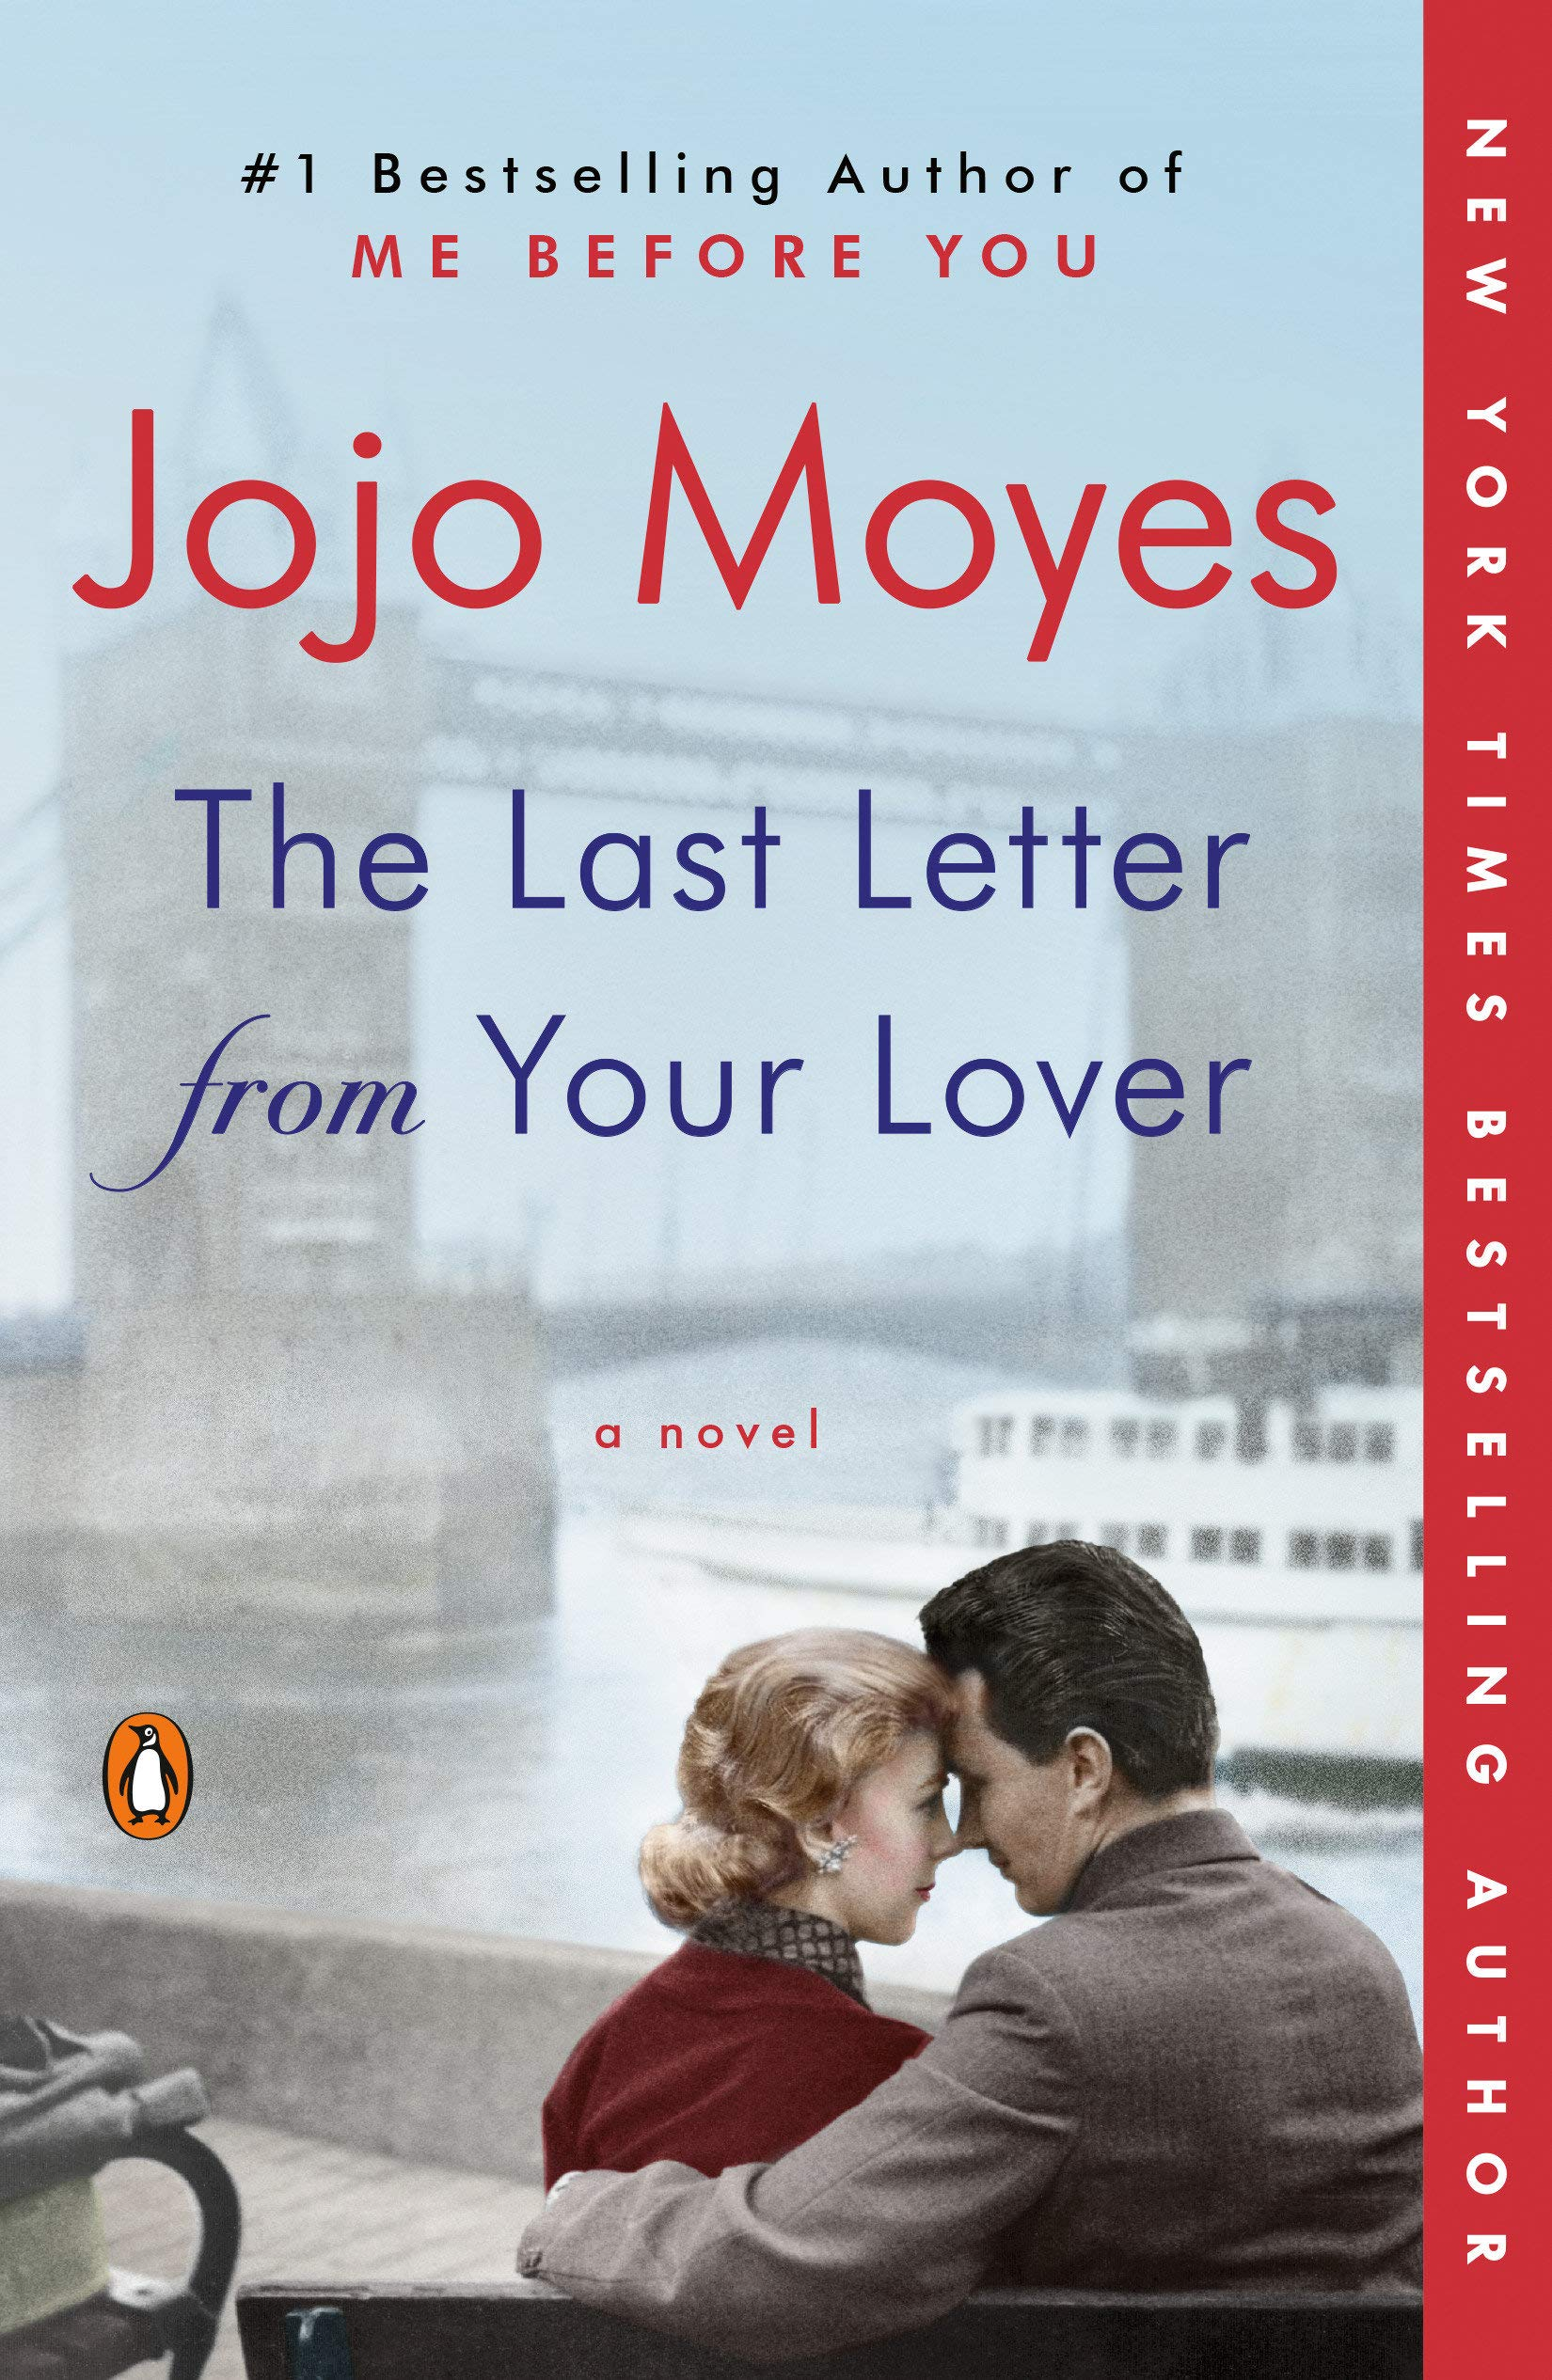 The Last Letter from Your Lover: Amazon.it: Moyes, Jojo: Libri in altre  lingue